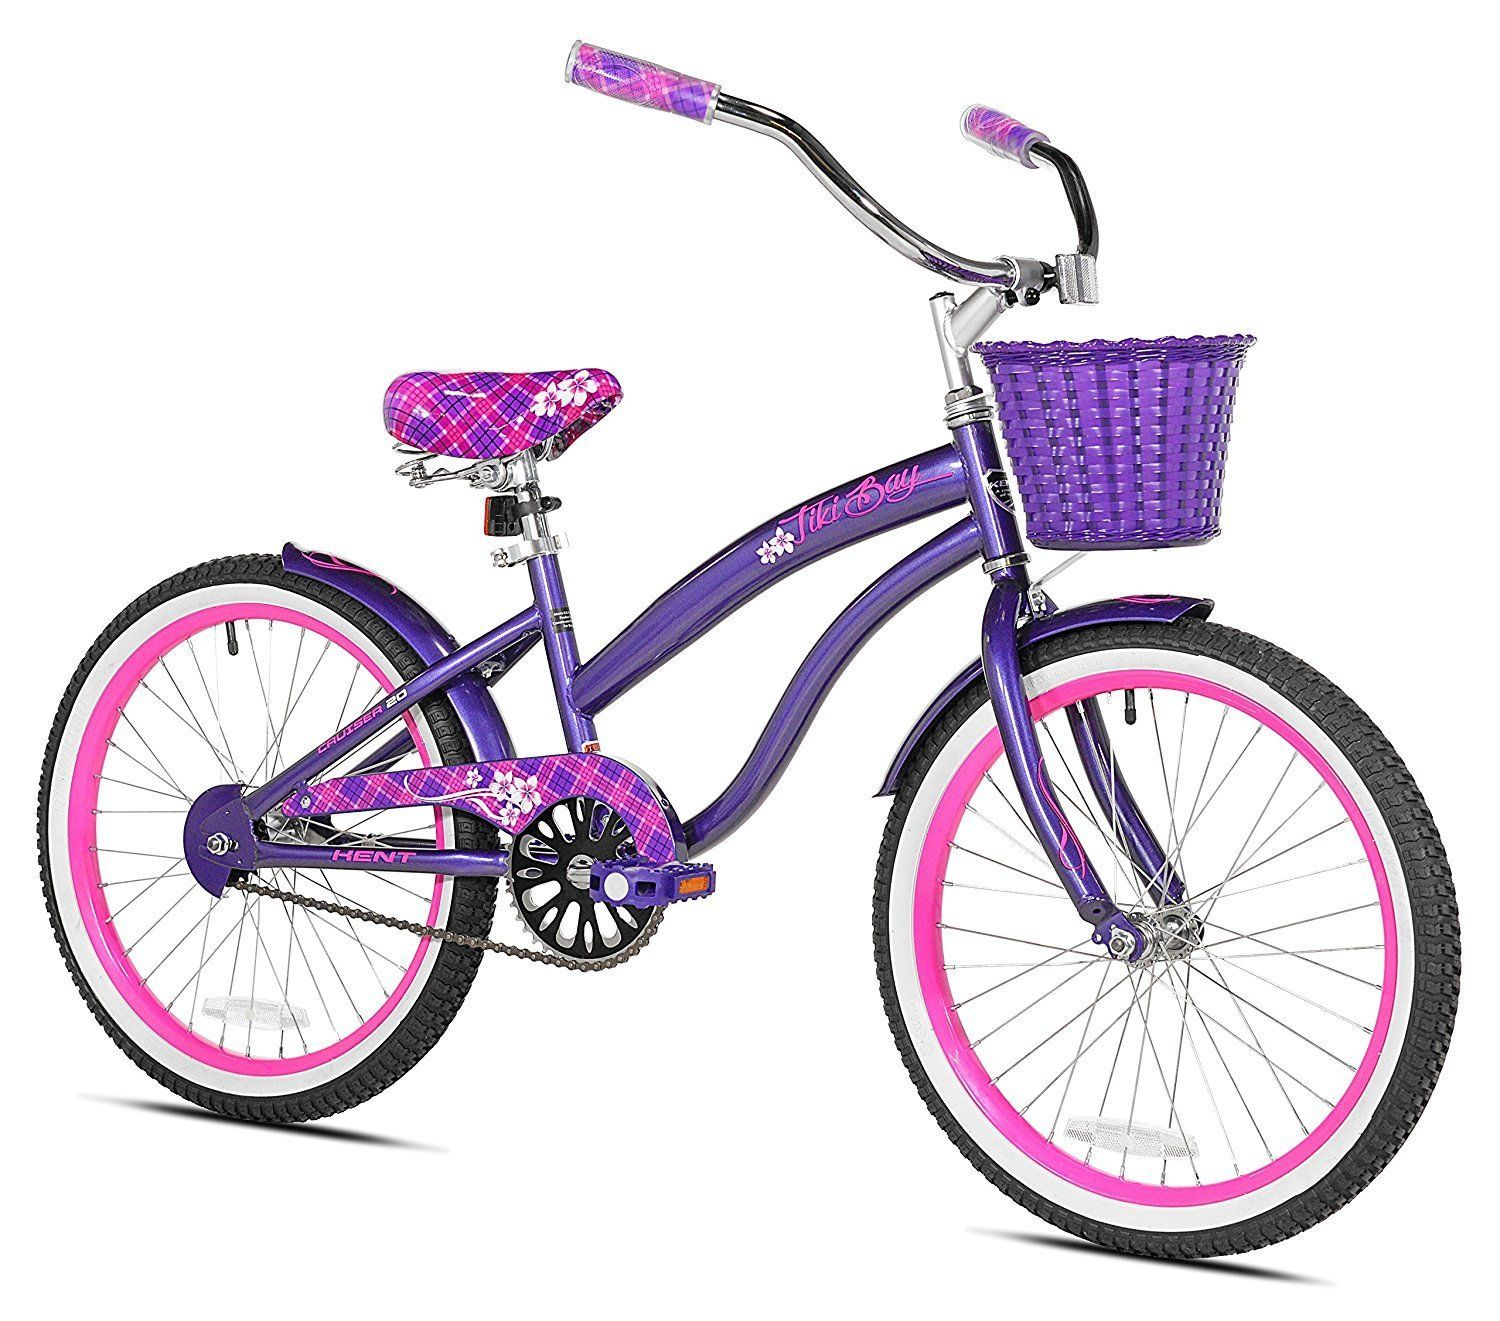 Kids Bike Bicycle Training Wheels 20 Inch Wheel Bmx Cruiser Girls Children Sport Kids Bike Bicycle Girl Bikes Girls